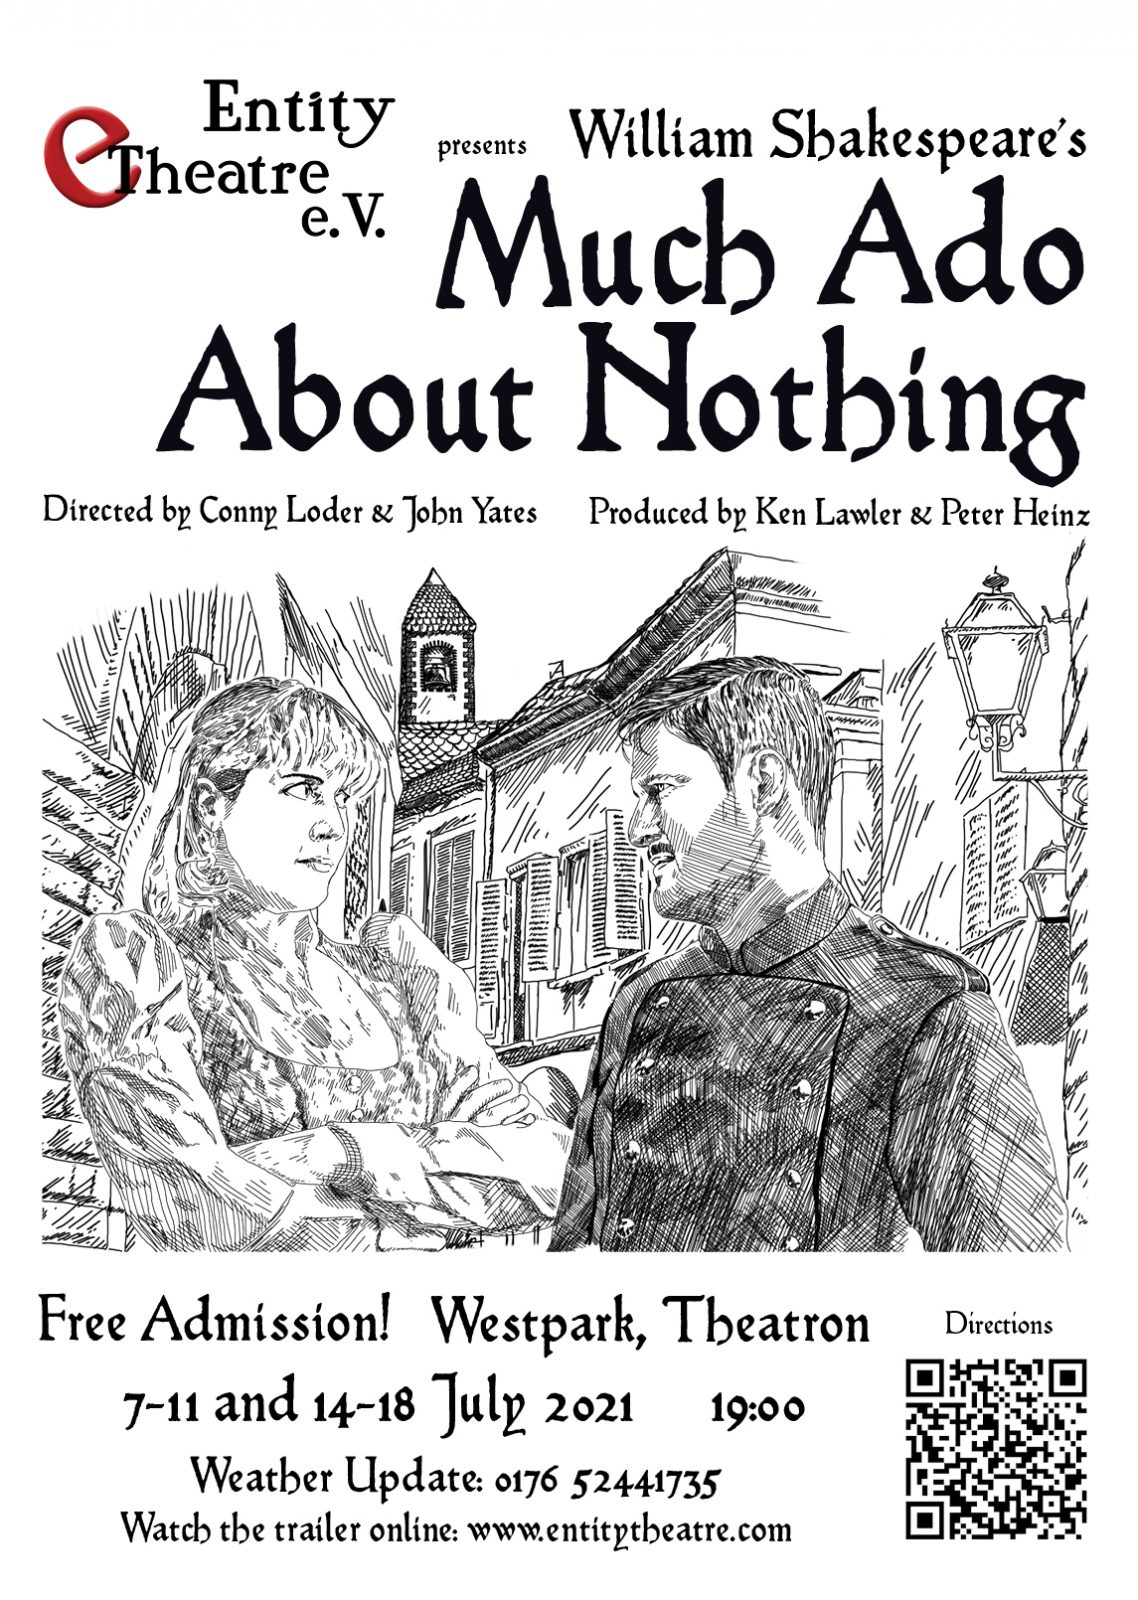 Directed by Conny Loder & John Yates and produced by Ken Lawler & Peter Heinz the performance dates are 7-11 & 14-18 July 2021, at 7pm. Performance lasts about 100 min.